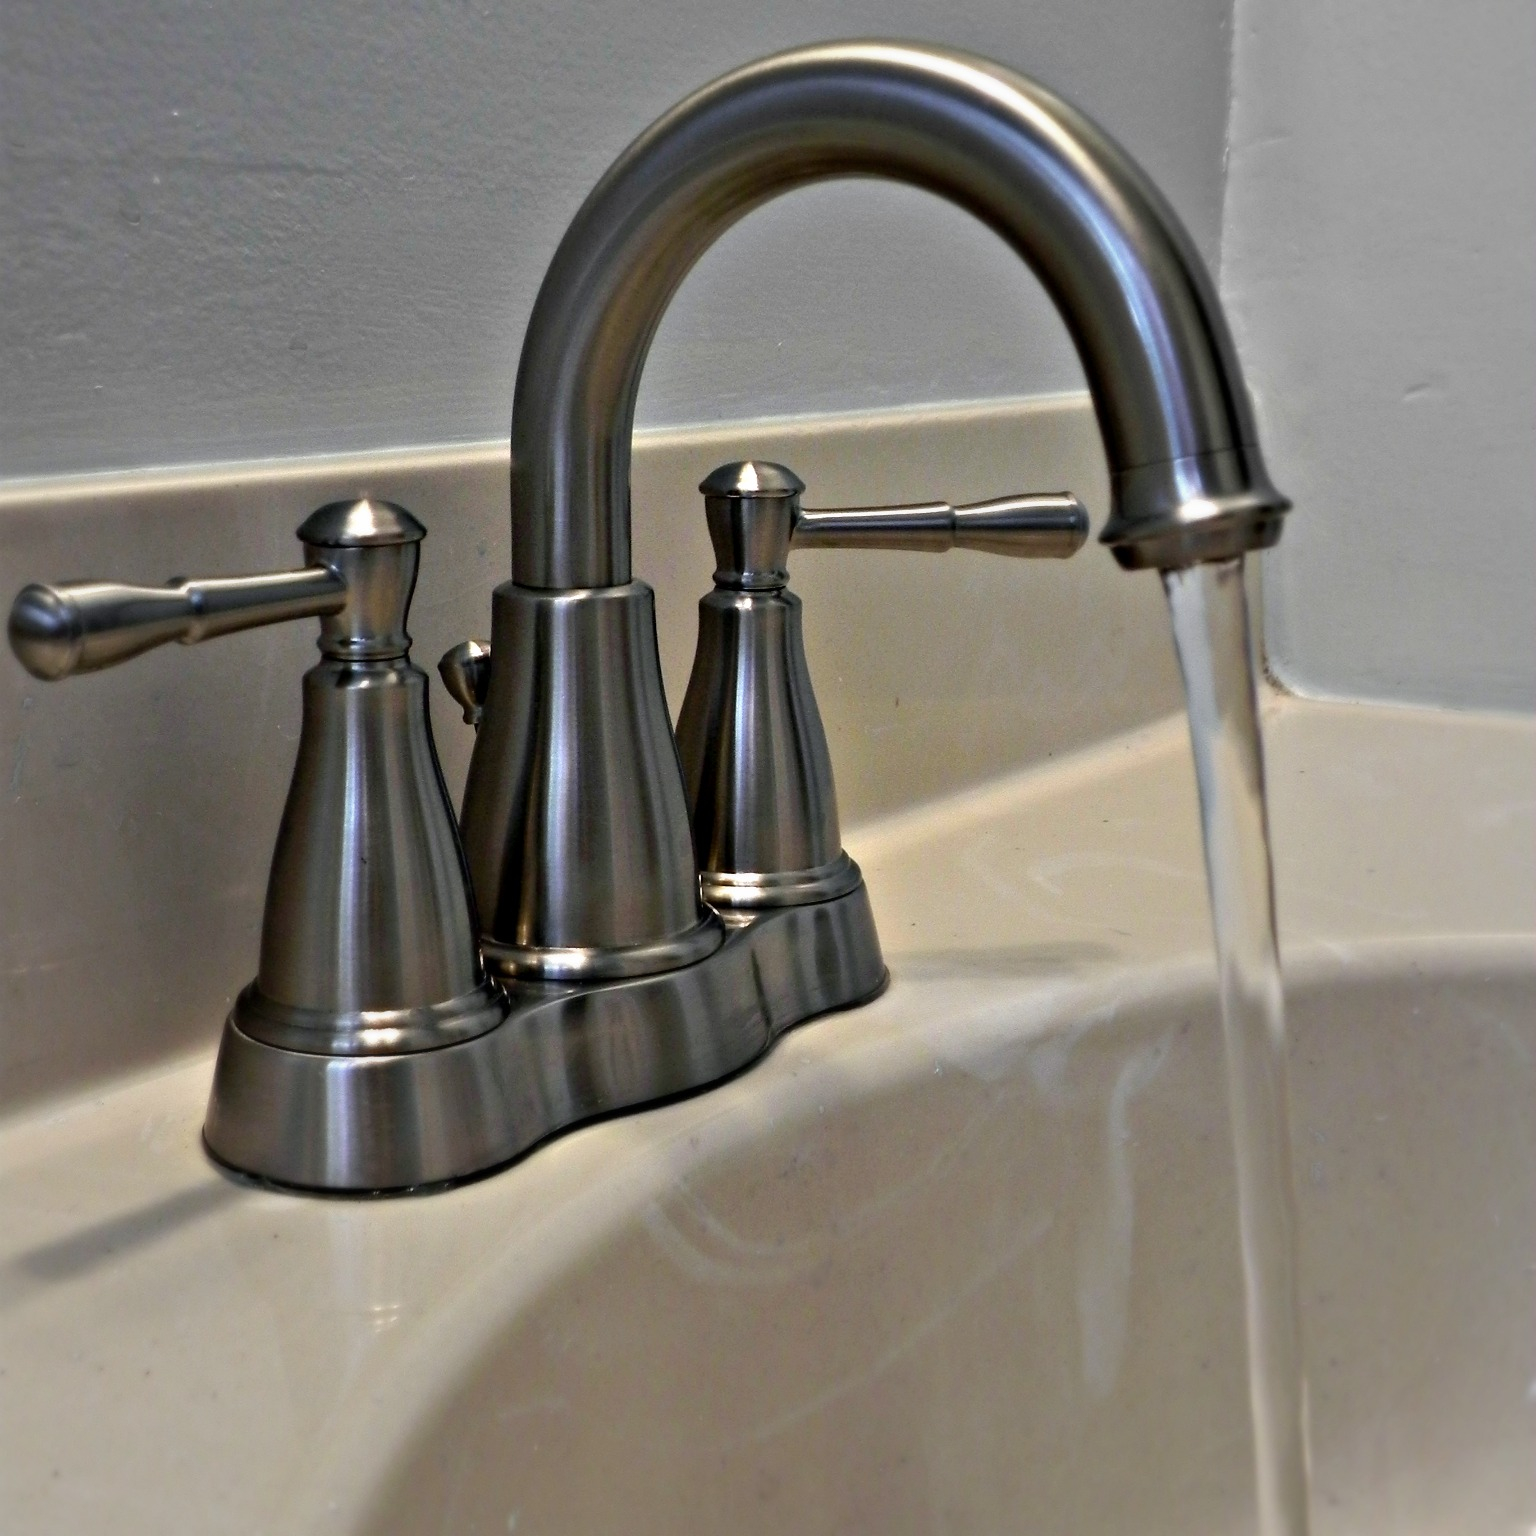 One Piece Bathtub Faucet • Faucet Ideas Site